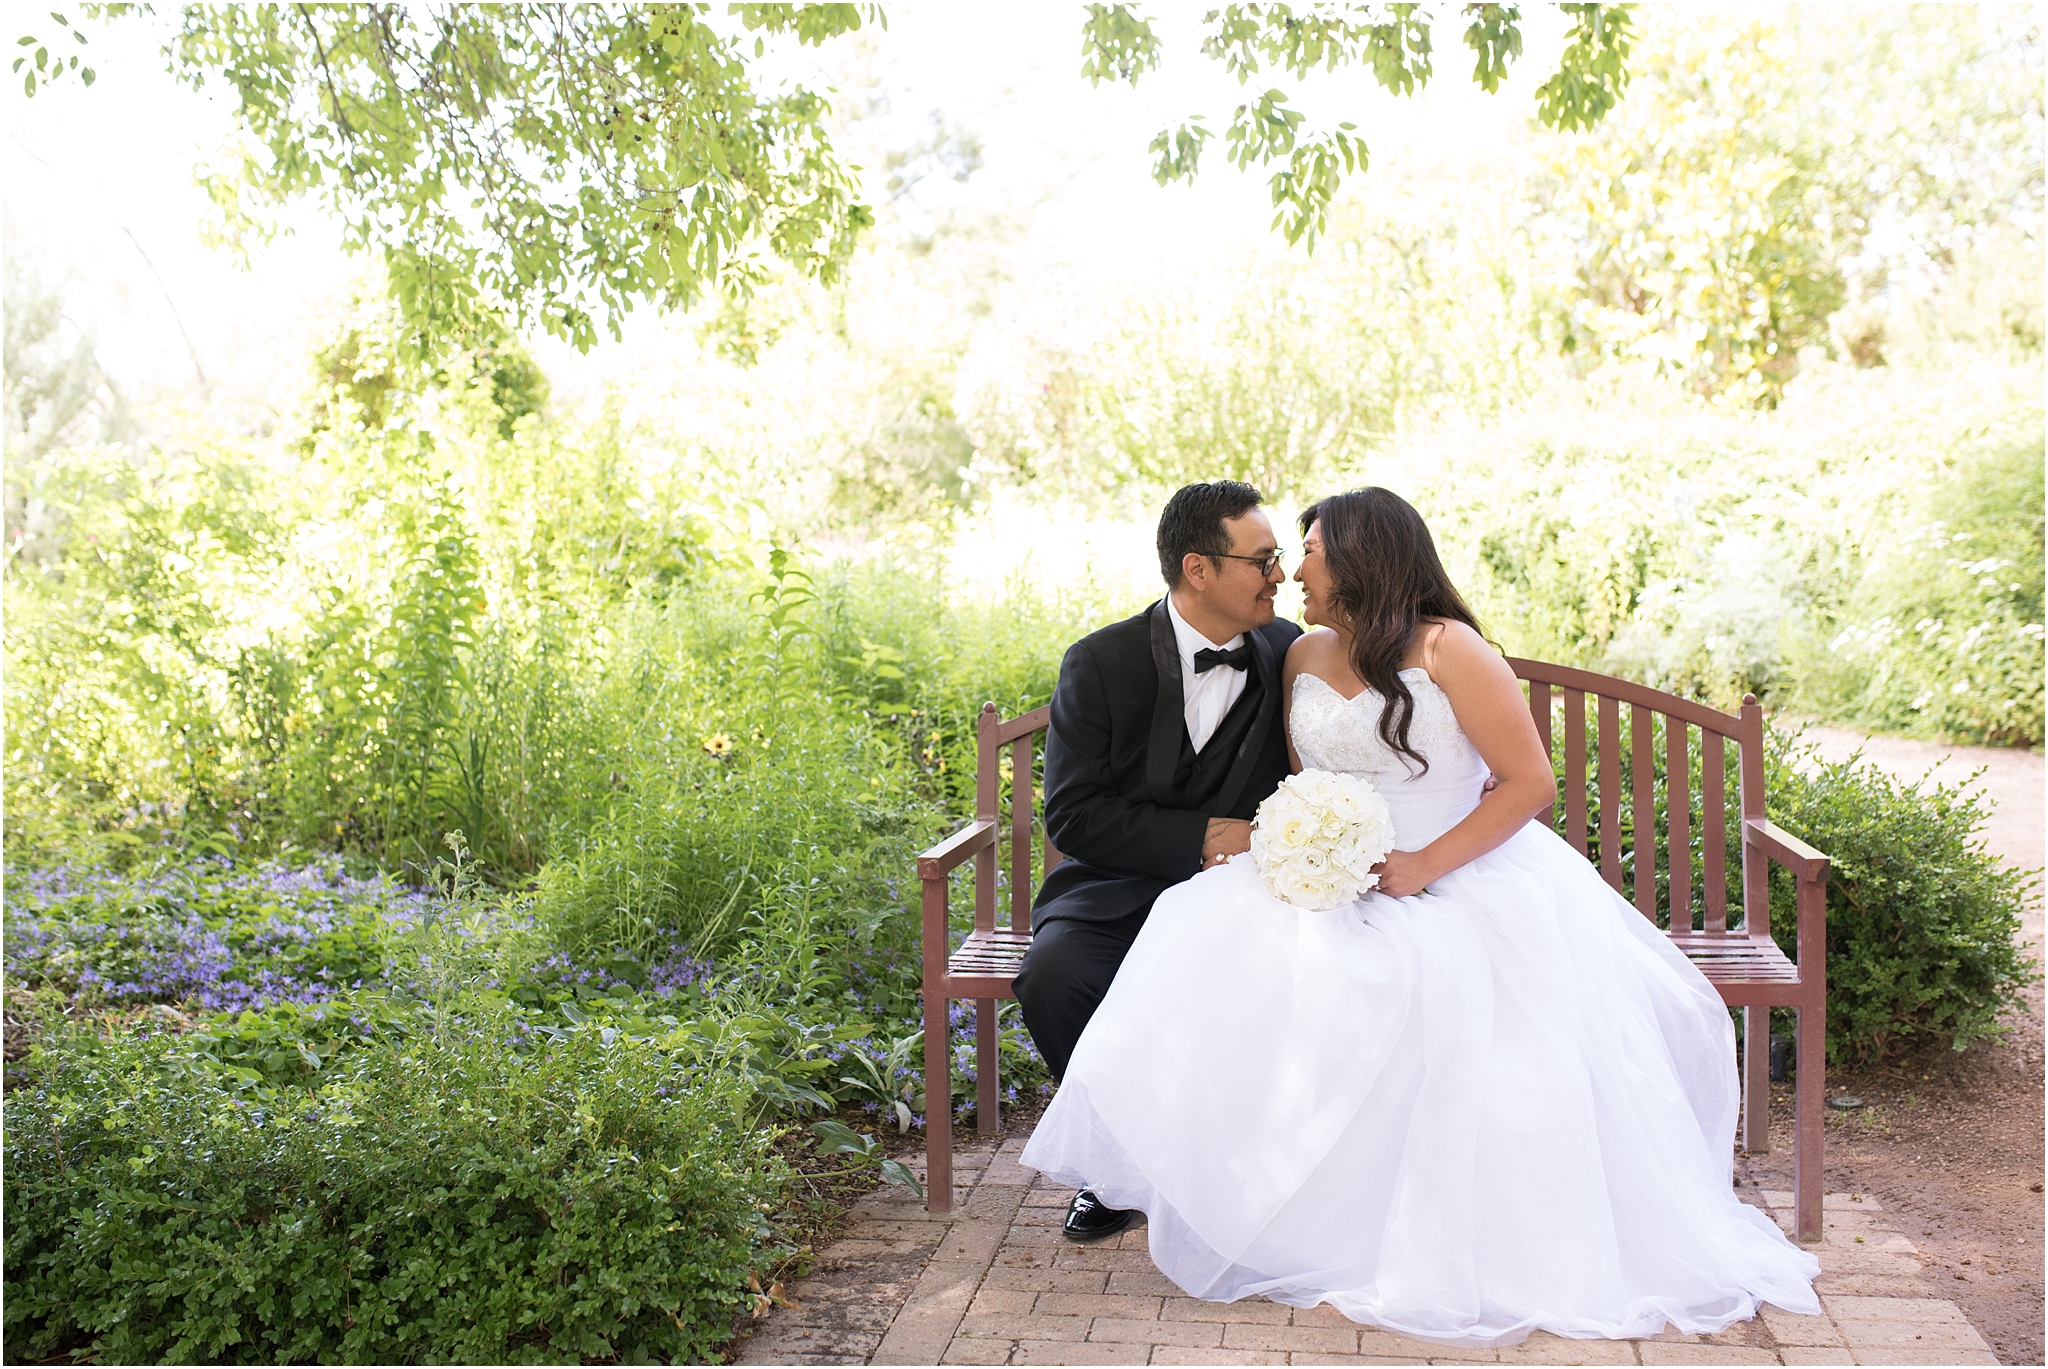 kayla kitts photography - new mexico wedding photographer - albuquerque botanic gardens - hotel albuquerque-casa de suenos_0222.jpg